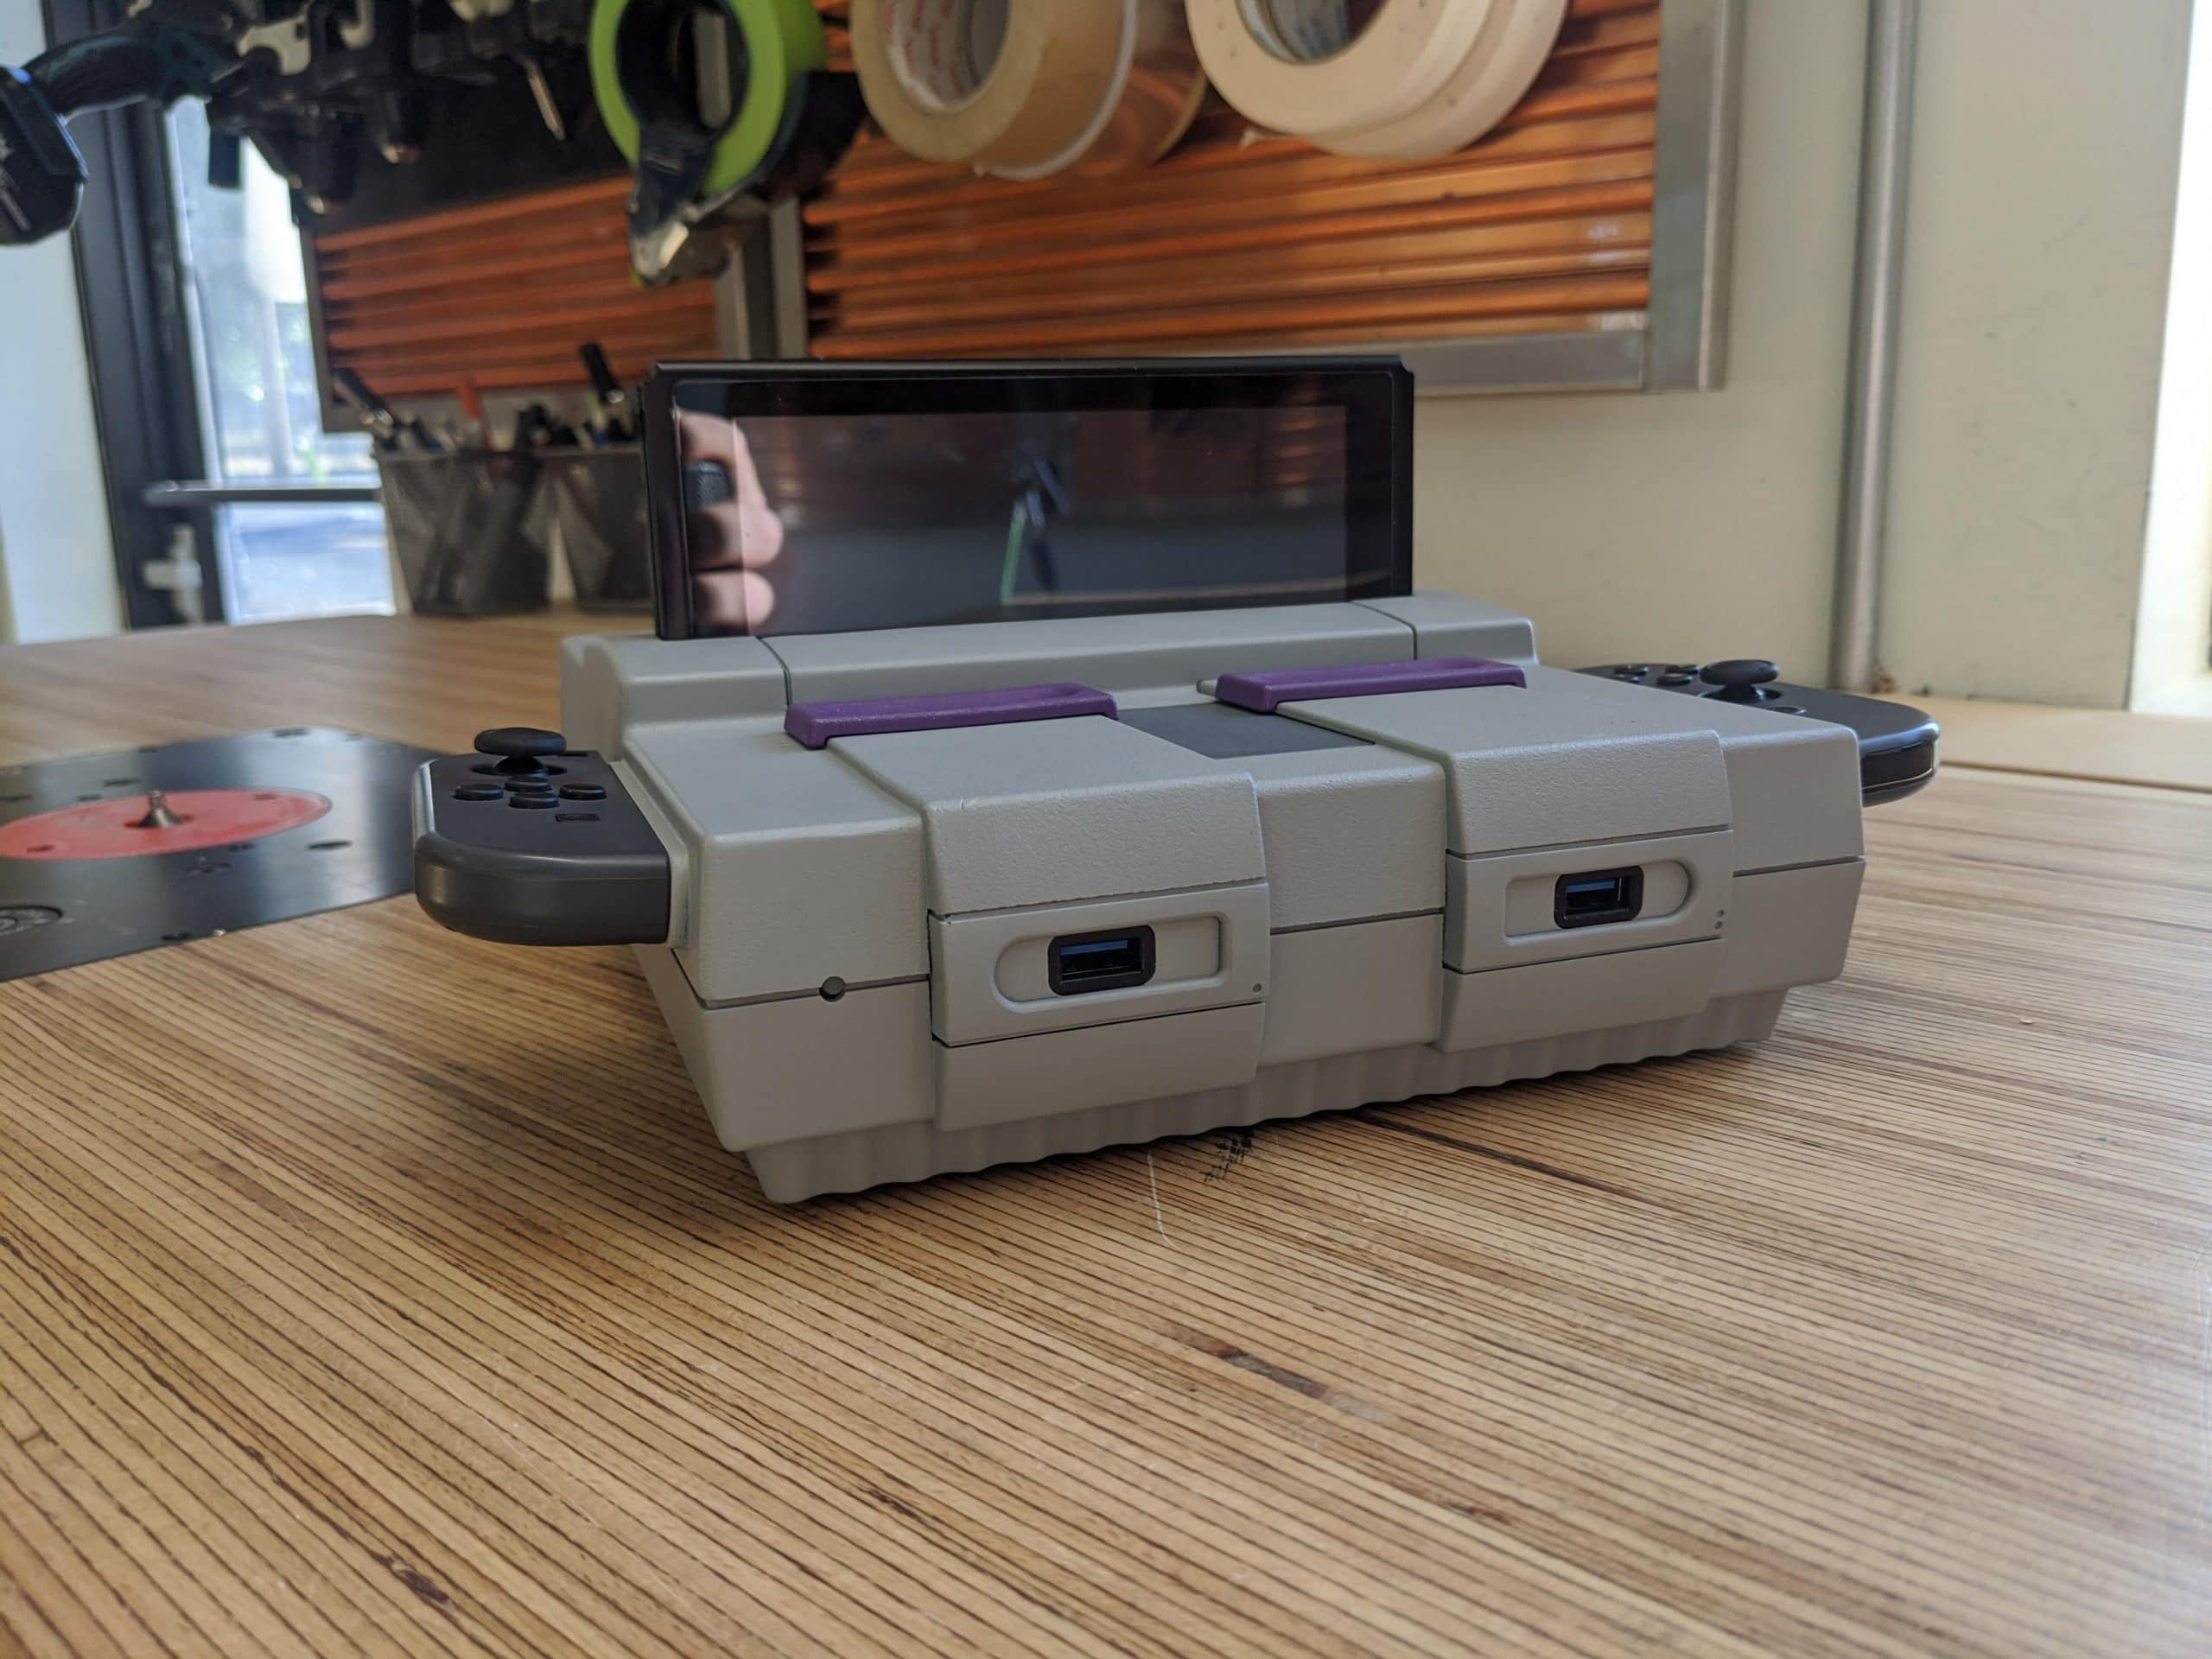 SNES Switch Dock: Aus alter Konsole wird Dockingstation